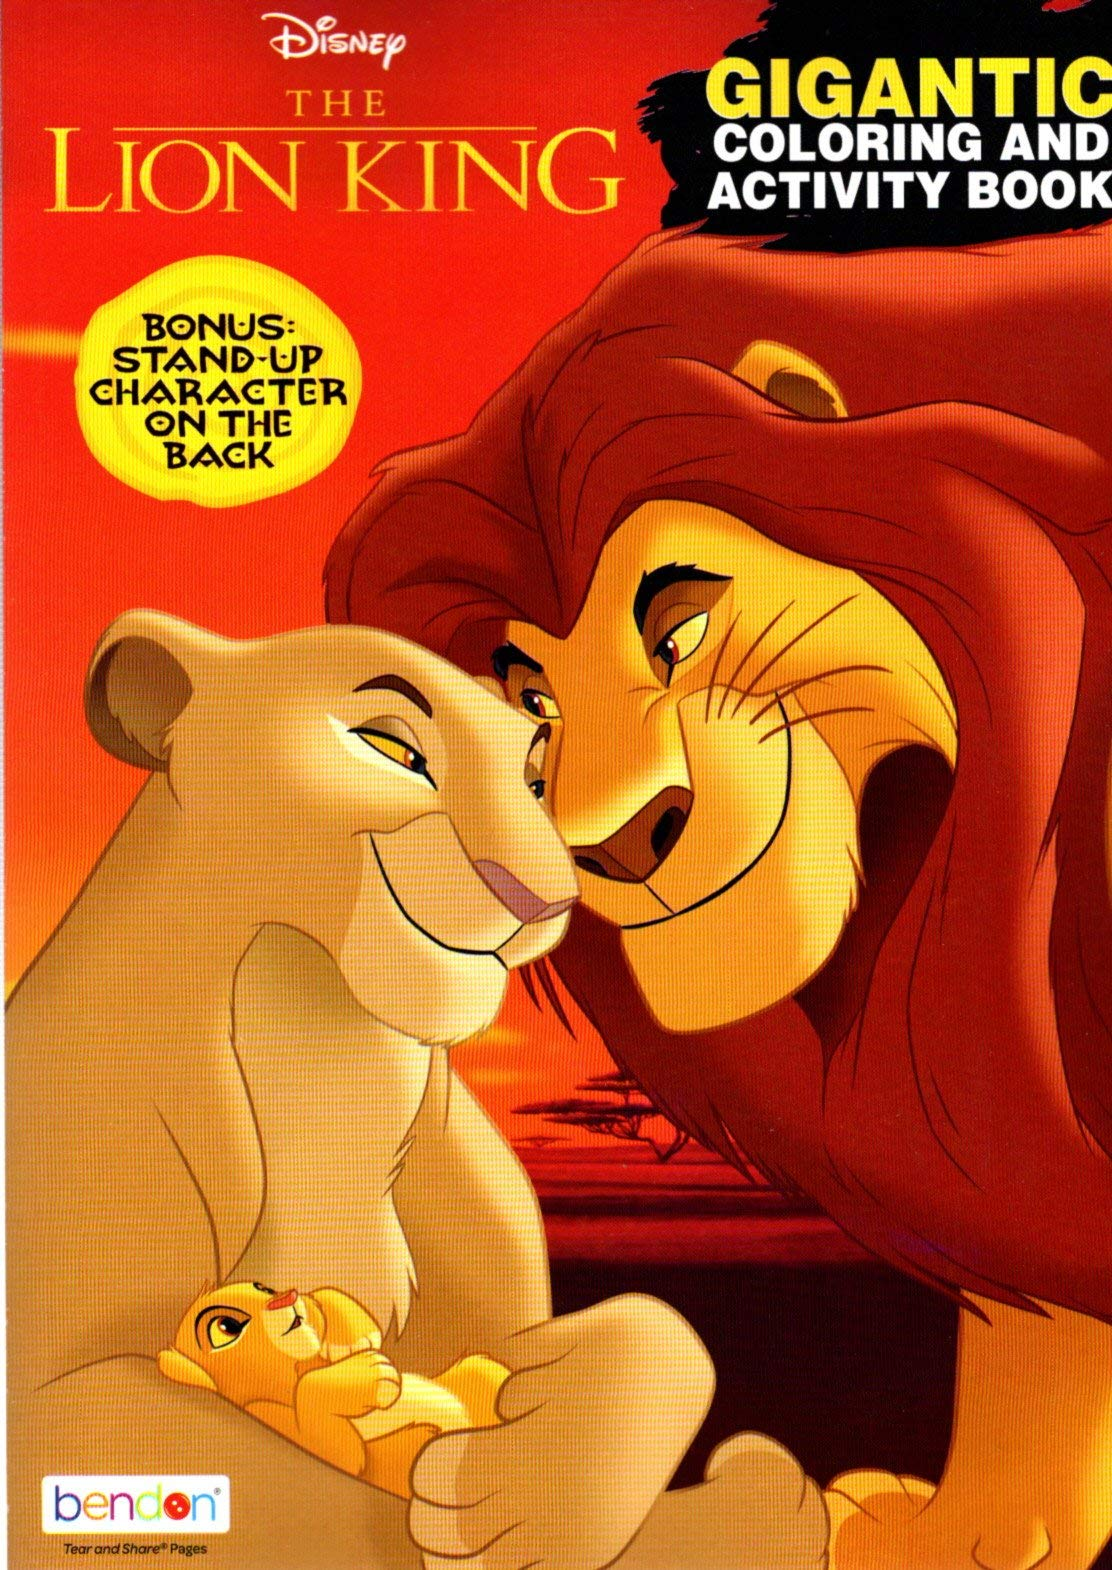 Disney - The Lion King - Gigantic Coloring & Activity Book - 200 Pages